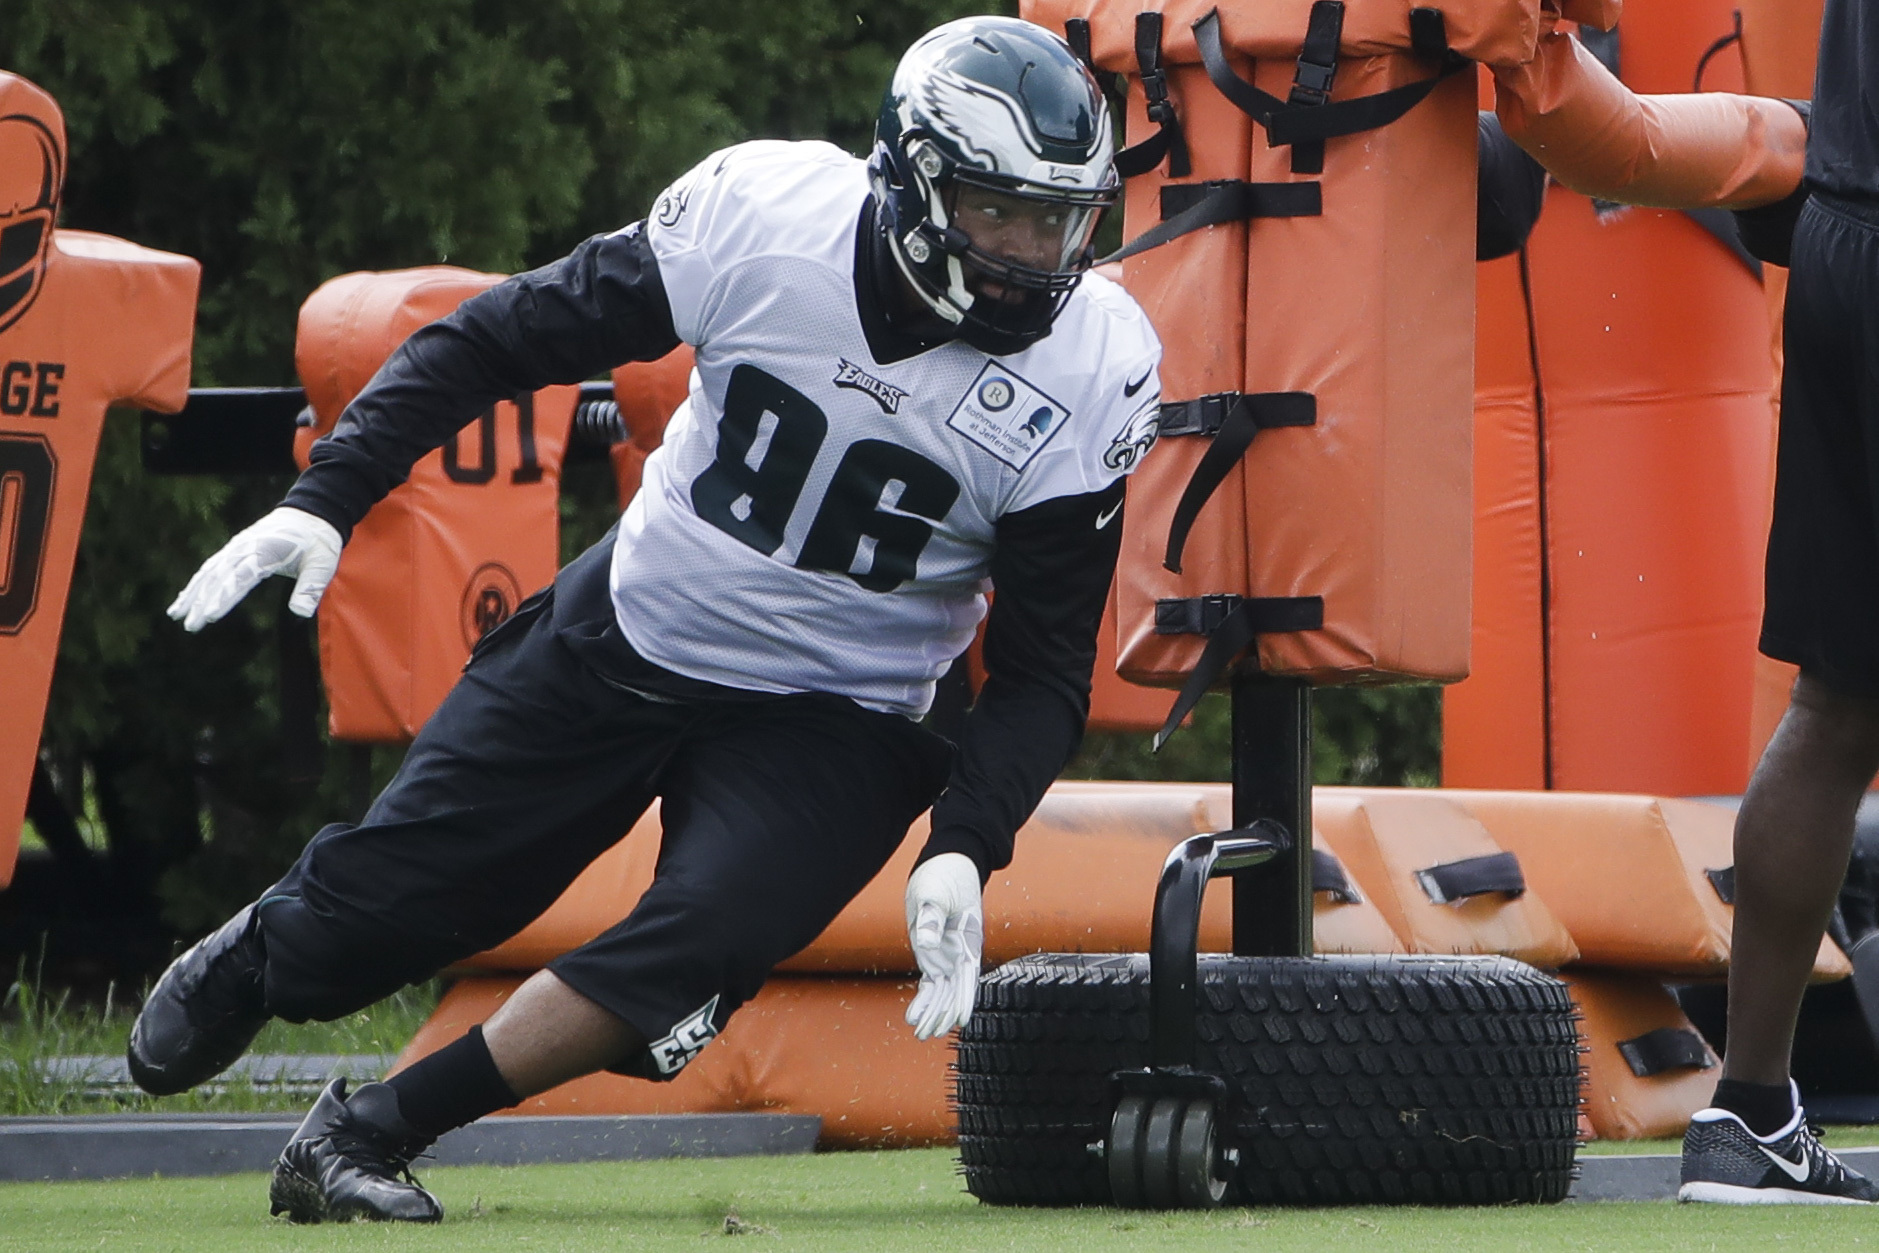 Philadelphia Eagles defensive end Derek Barnett runs a drill during an NFL football training camp on July 24.